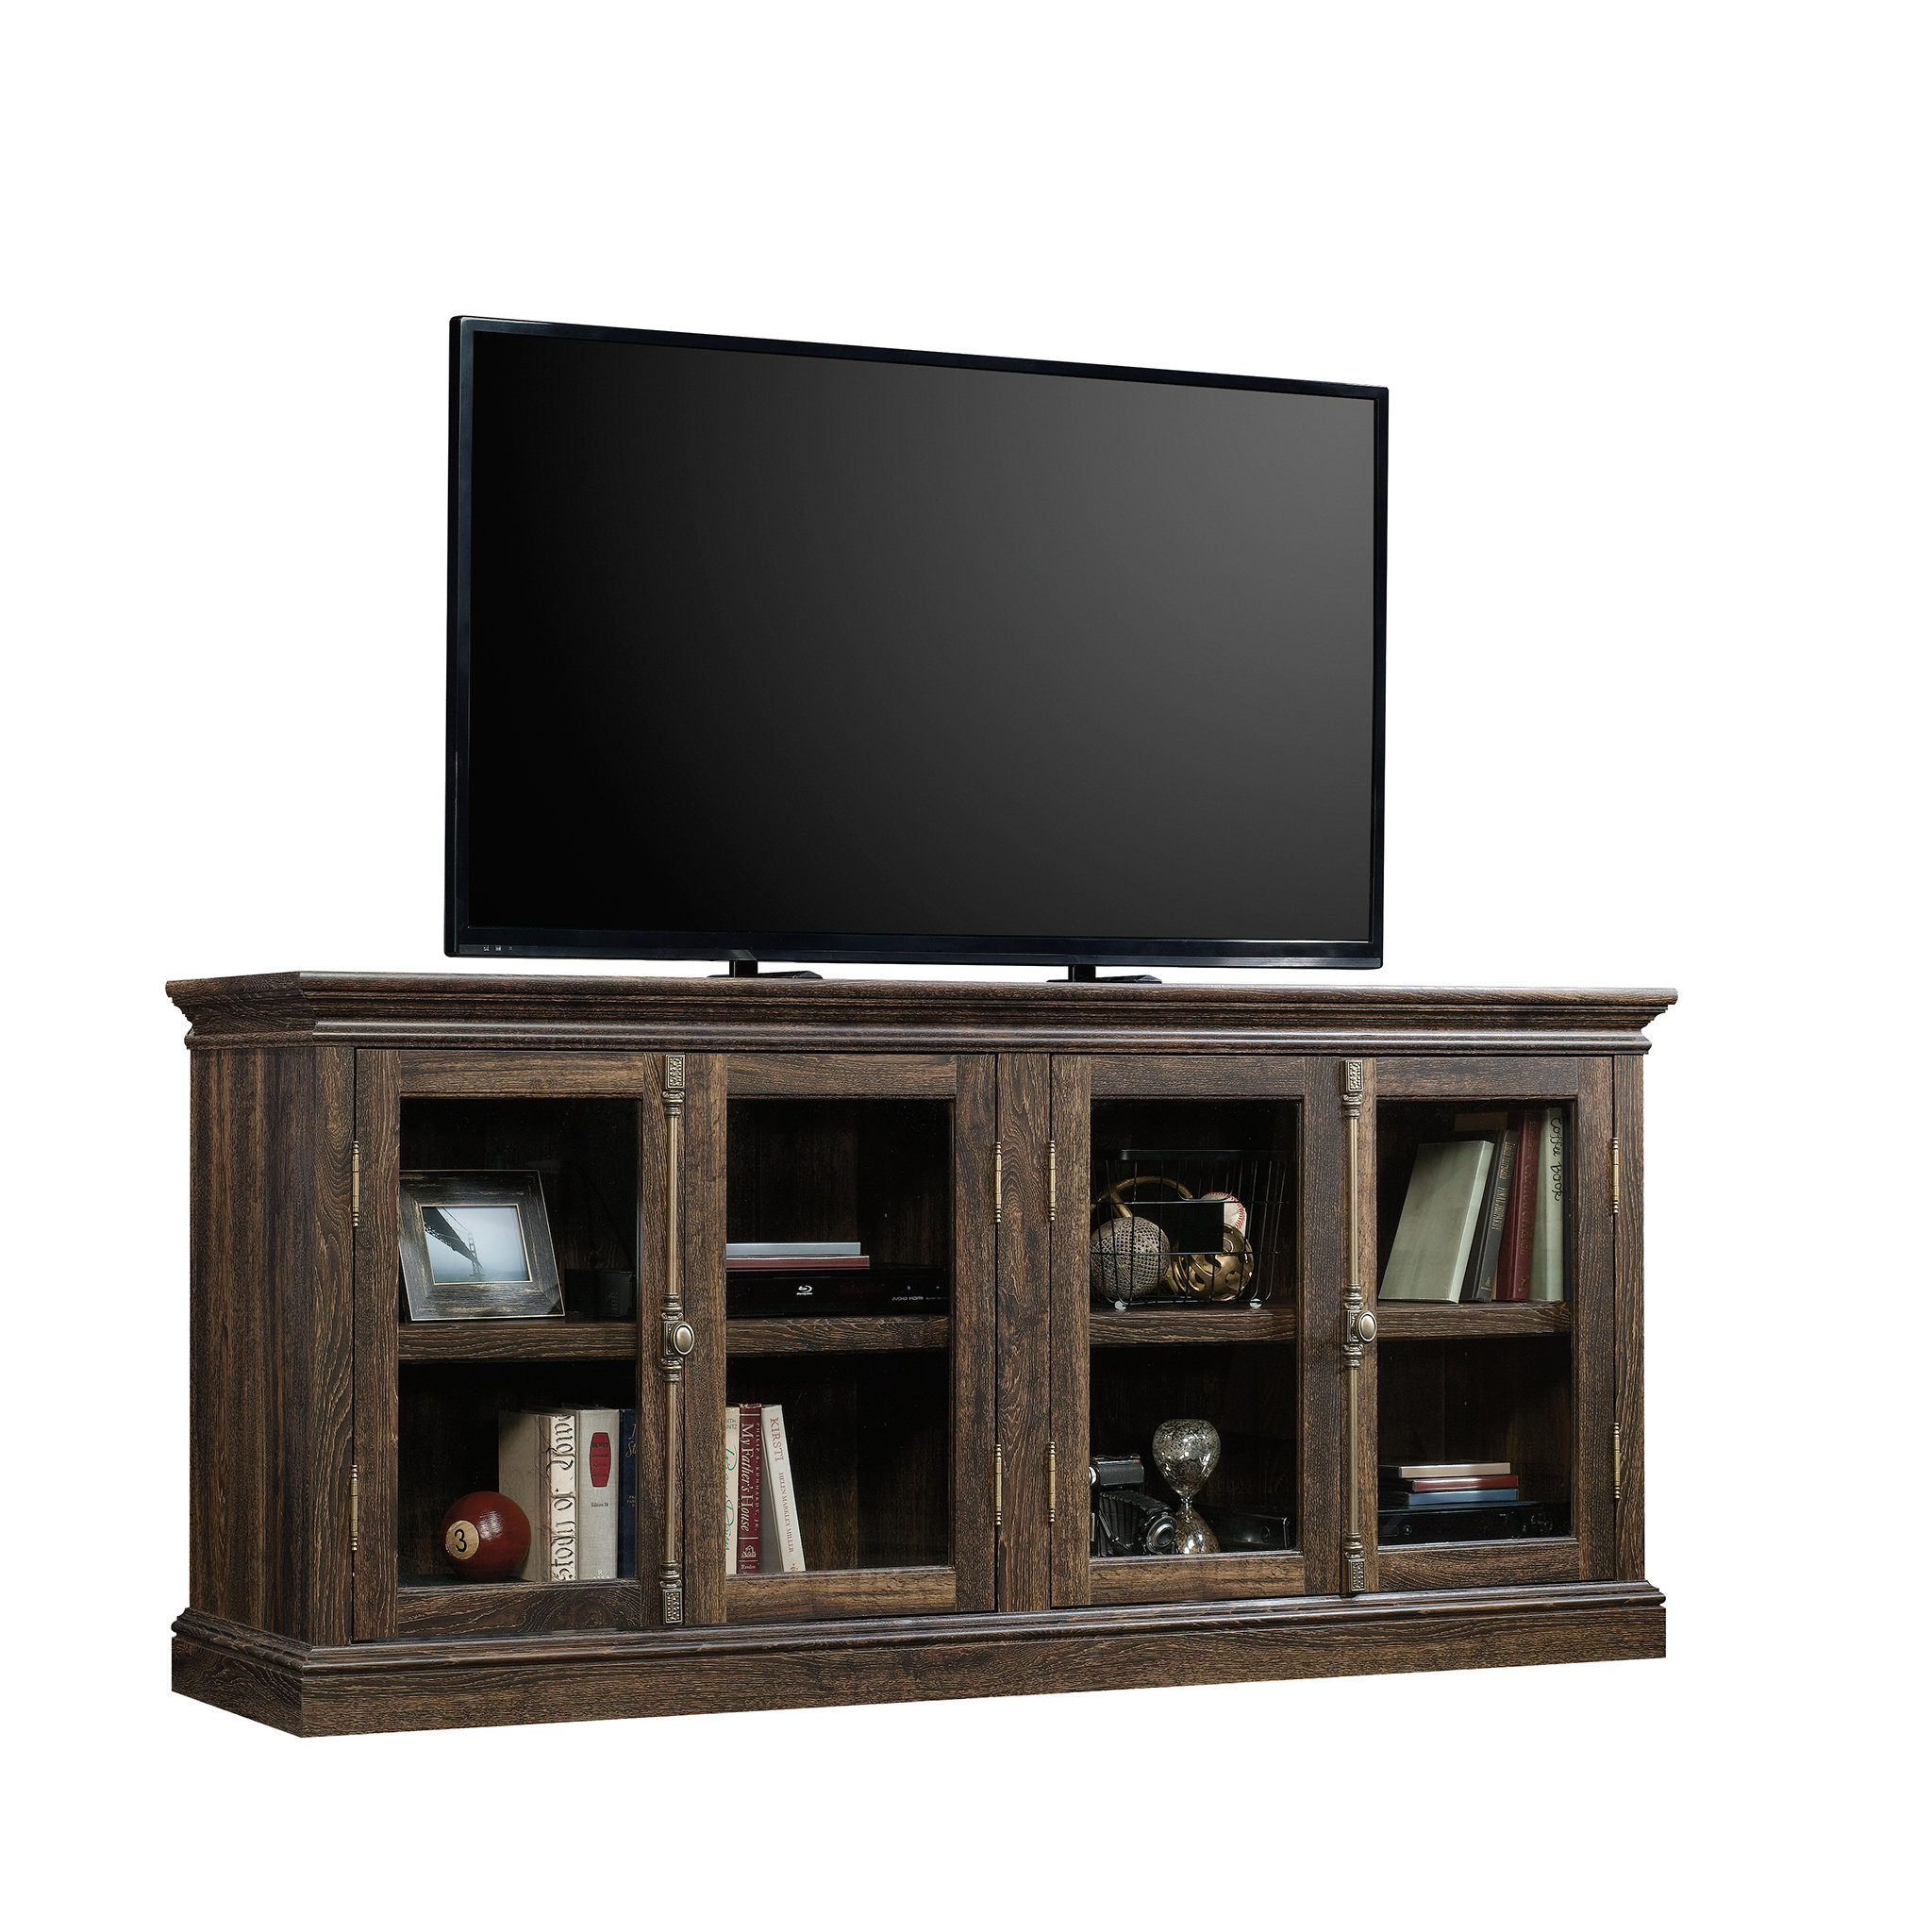 70 Inch Tv Stands | Joss & Main regarding Walton 74 Inch Open Tv Stands (Image 3 of 30)